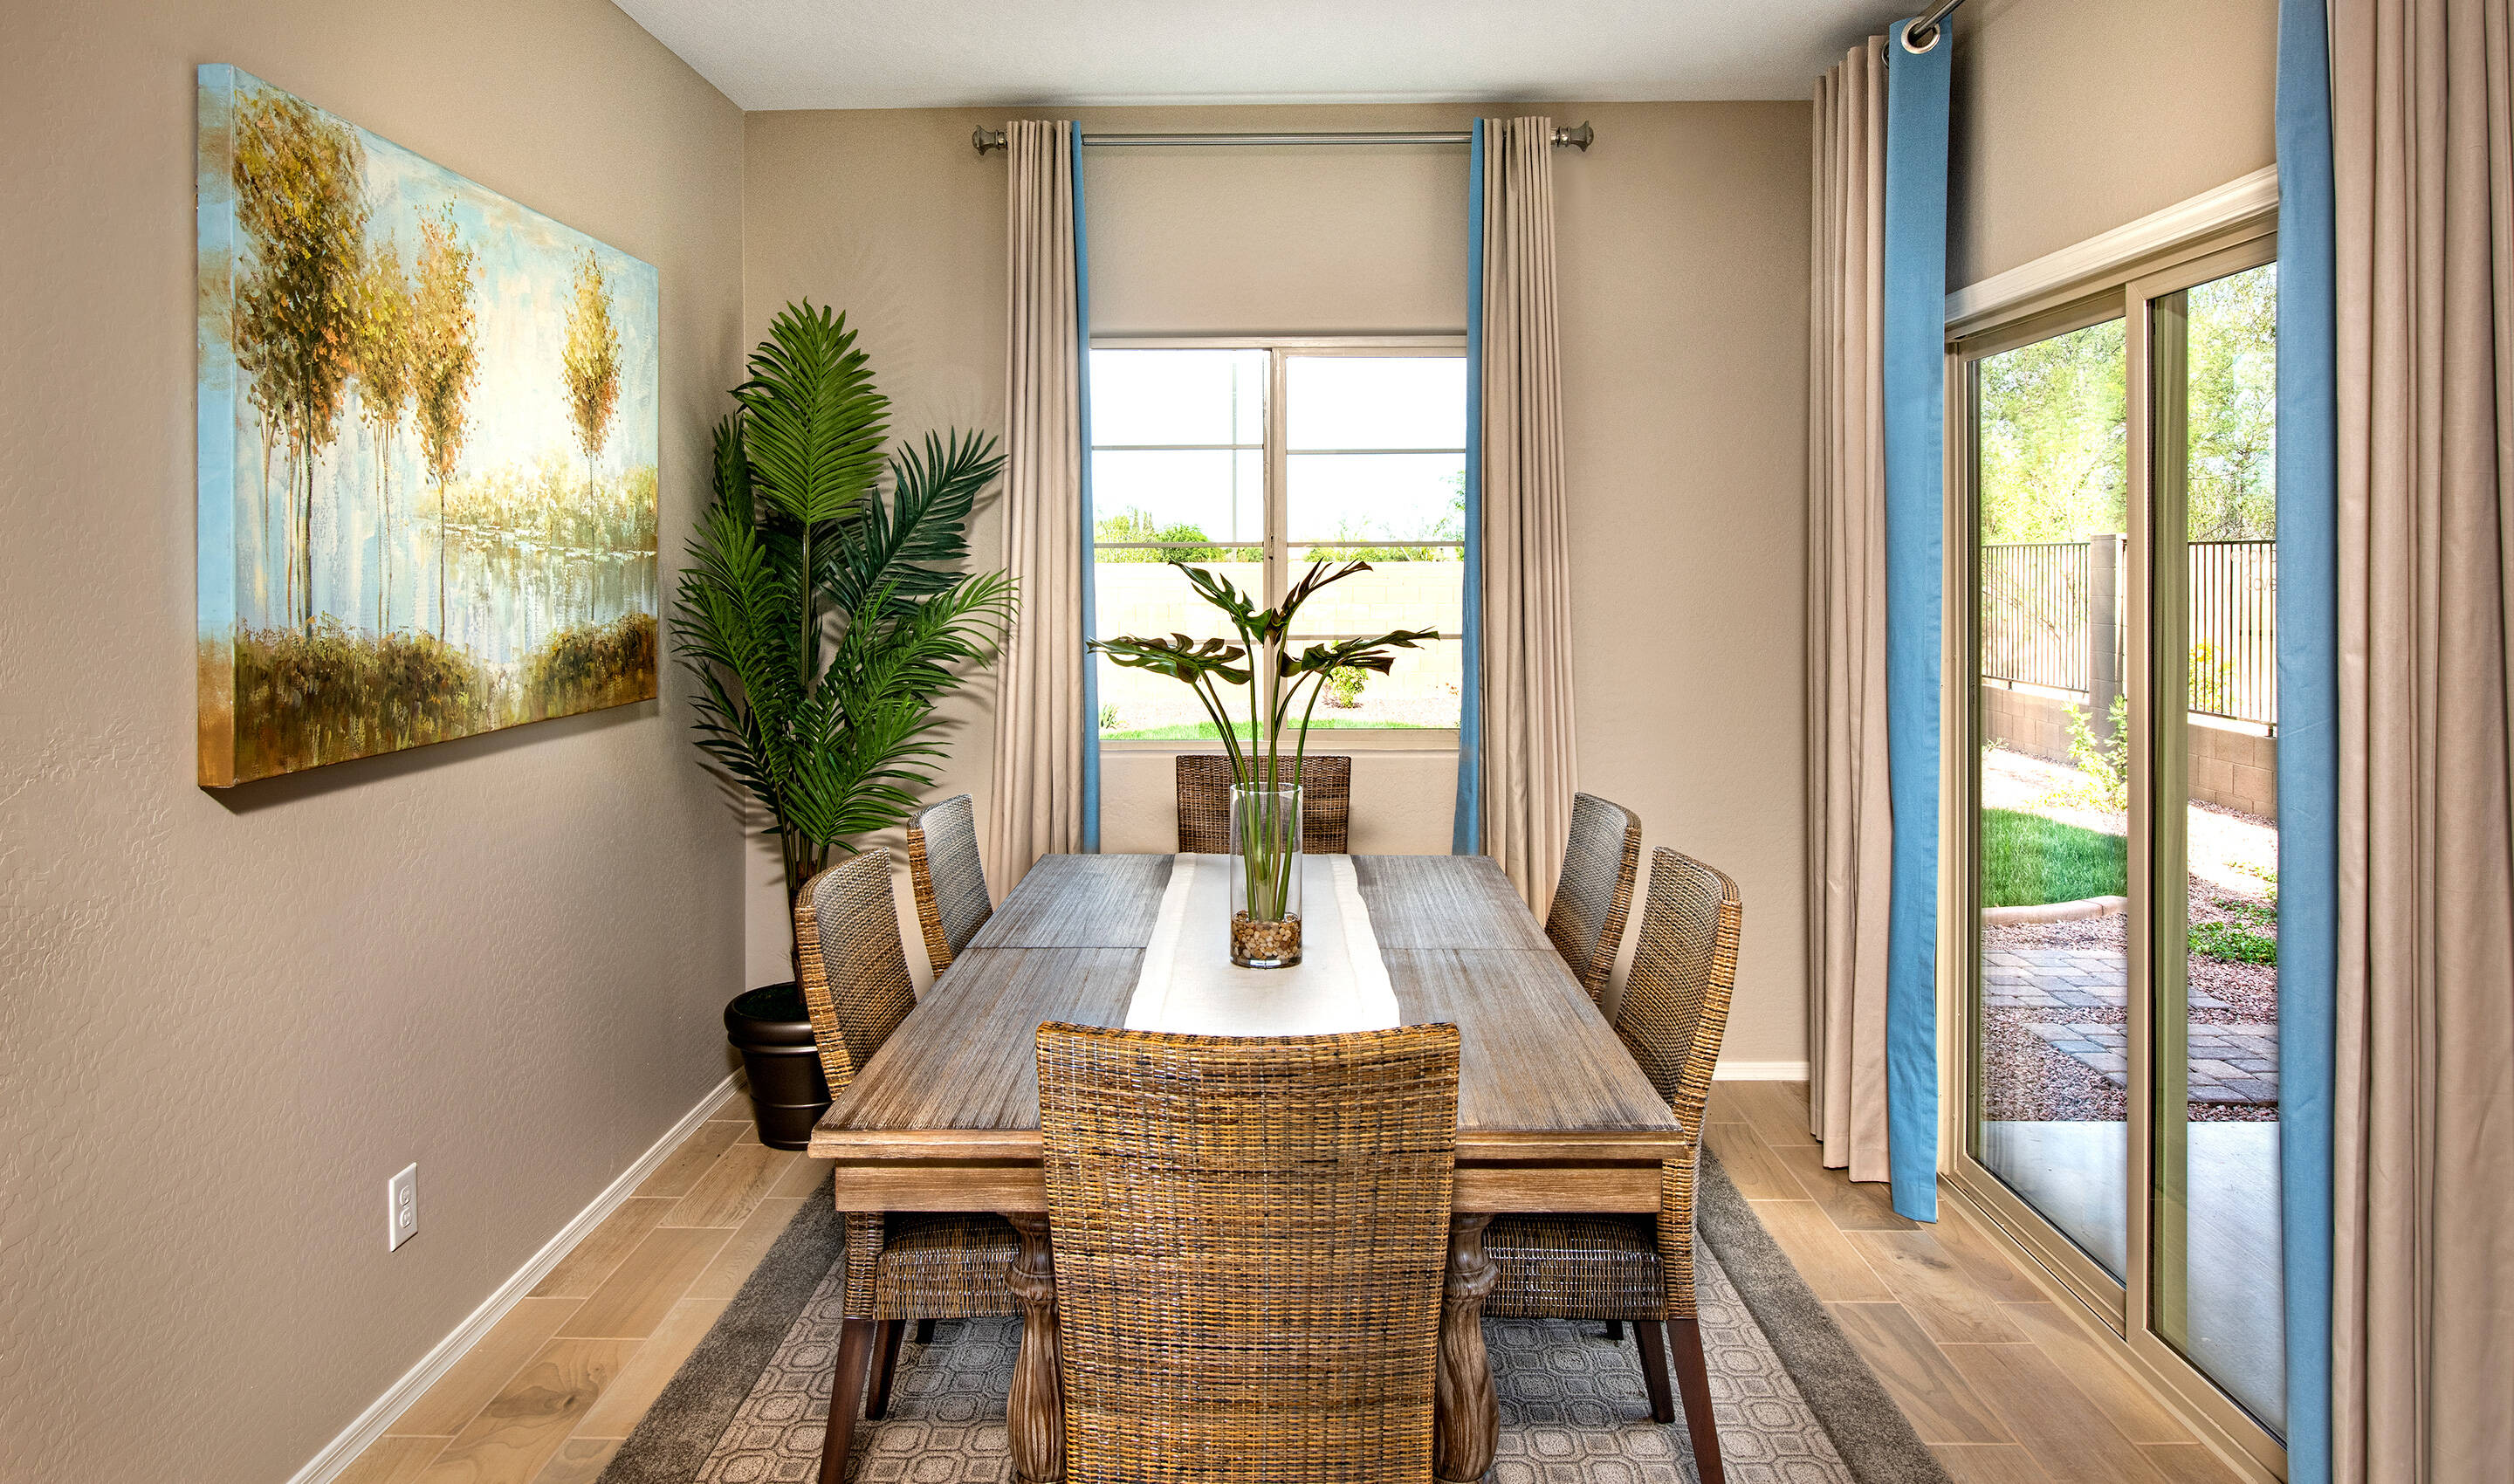 bliss-dining-room-aspire-at-villago-new-homes-casa-grande-az